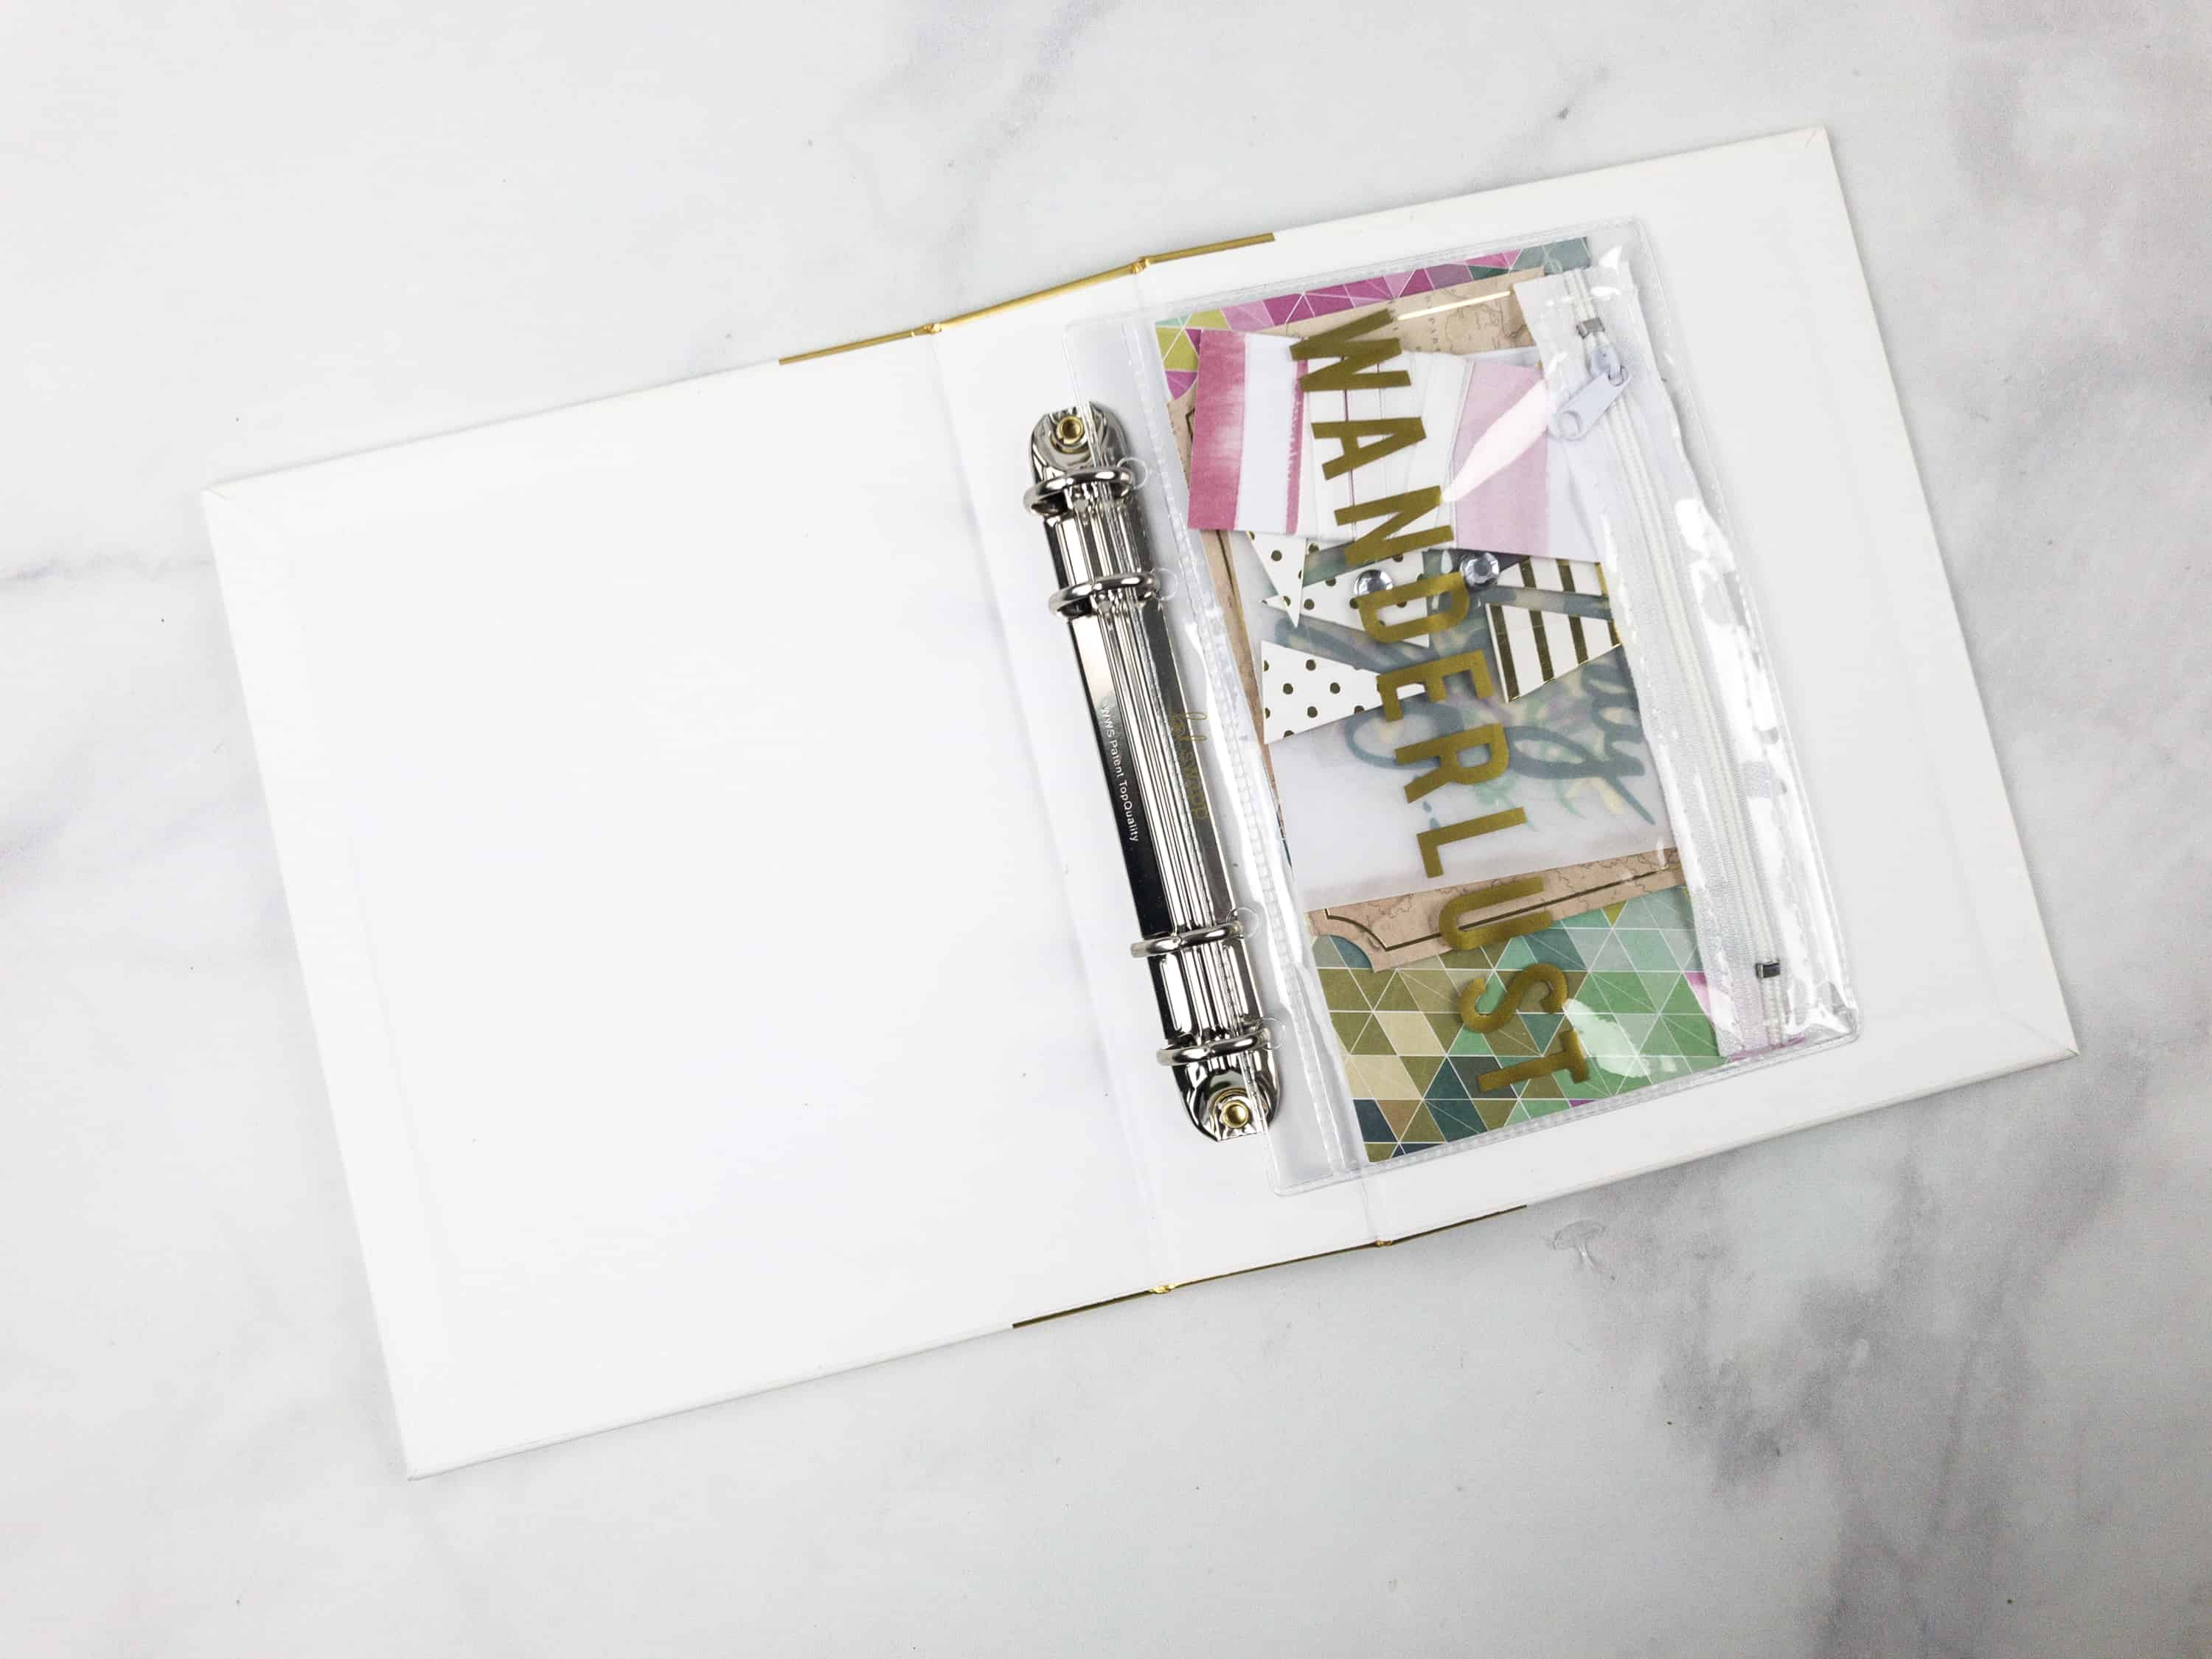 It Looks Great Placed Inside The Binder, And Makes A Better Storage For  Other Stationery Items!